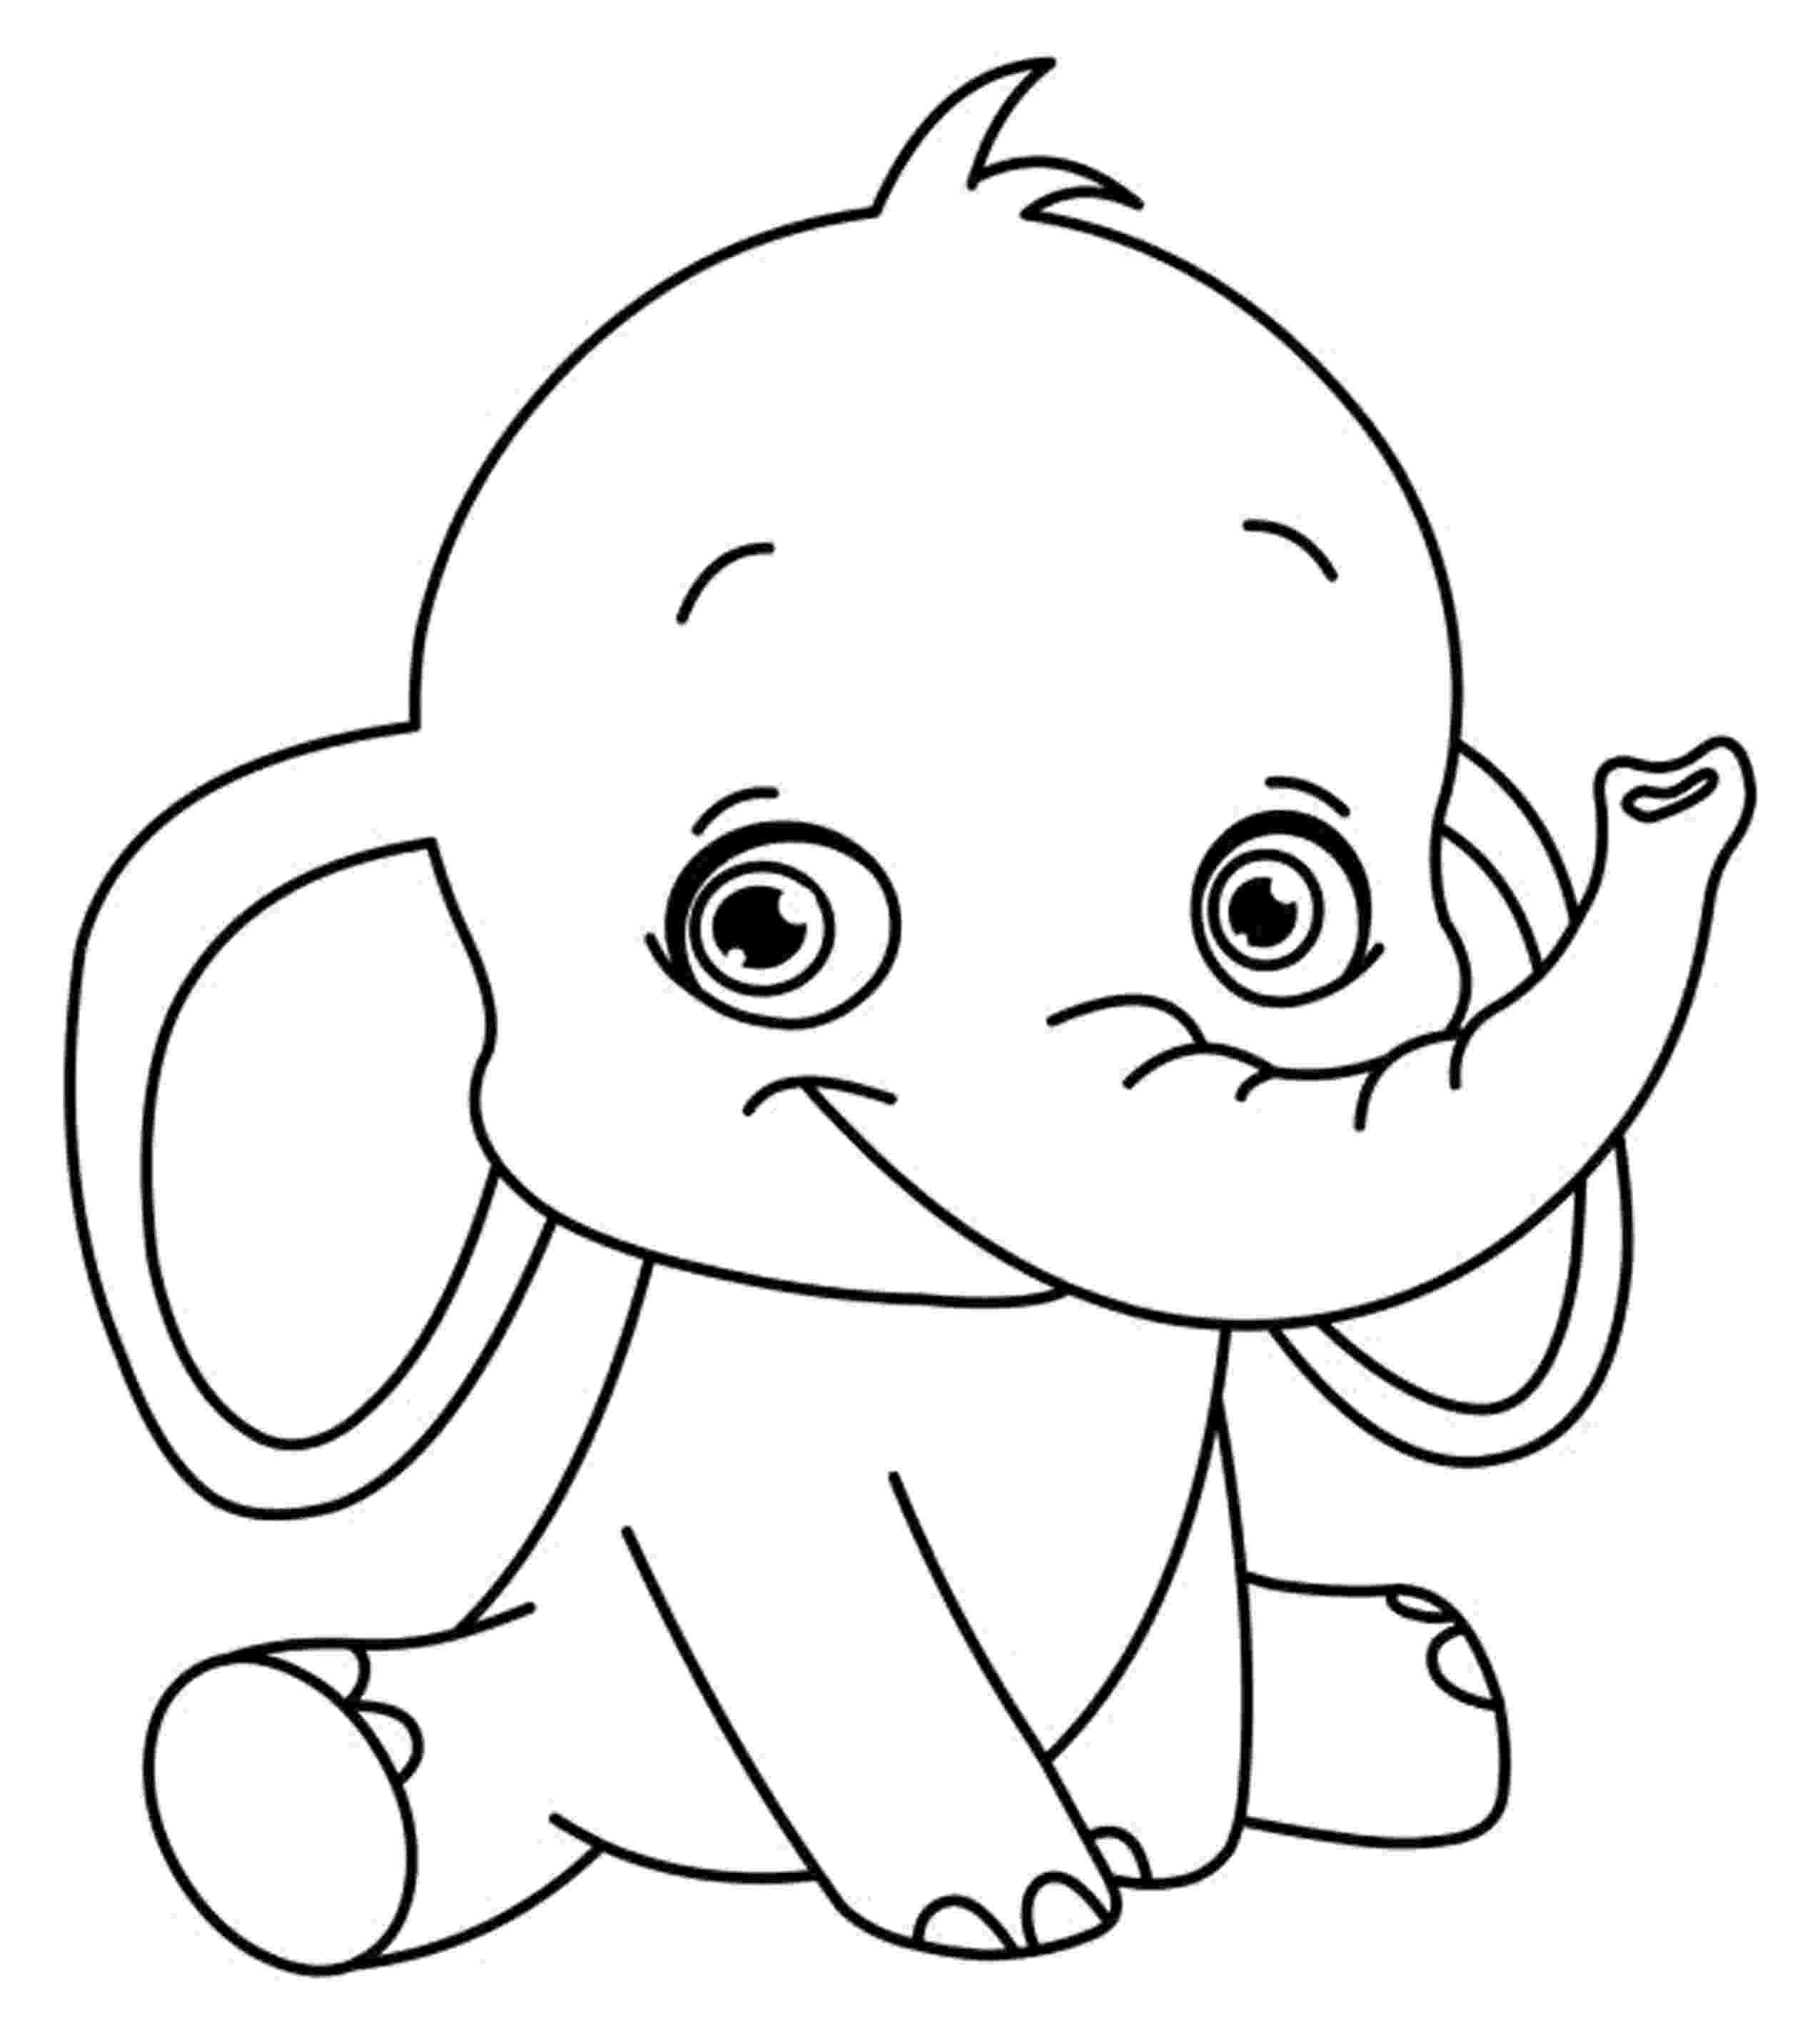 coloring pages easy easy coloring pages printable coloring home pages coloring easy